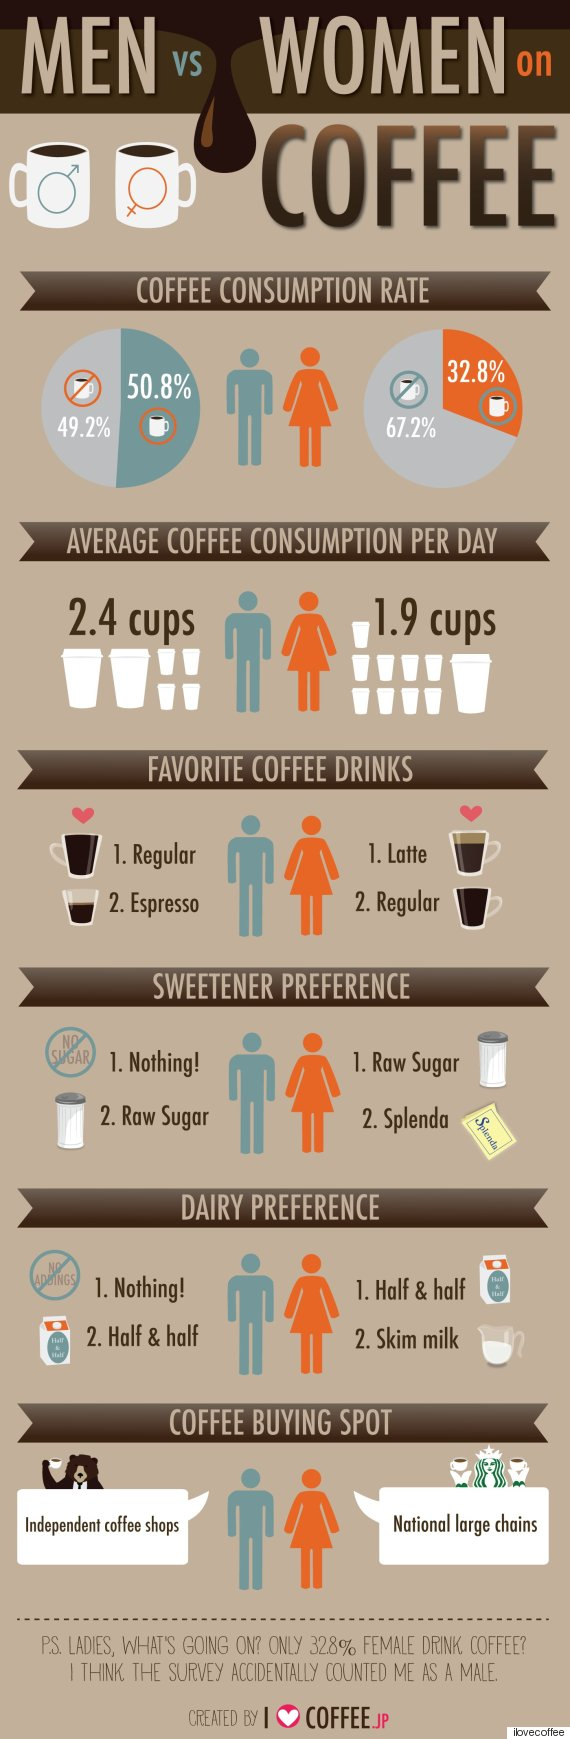 Coffee consumption between men and women